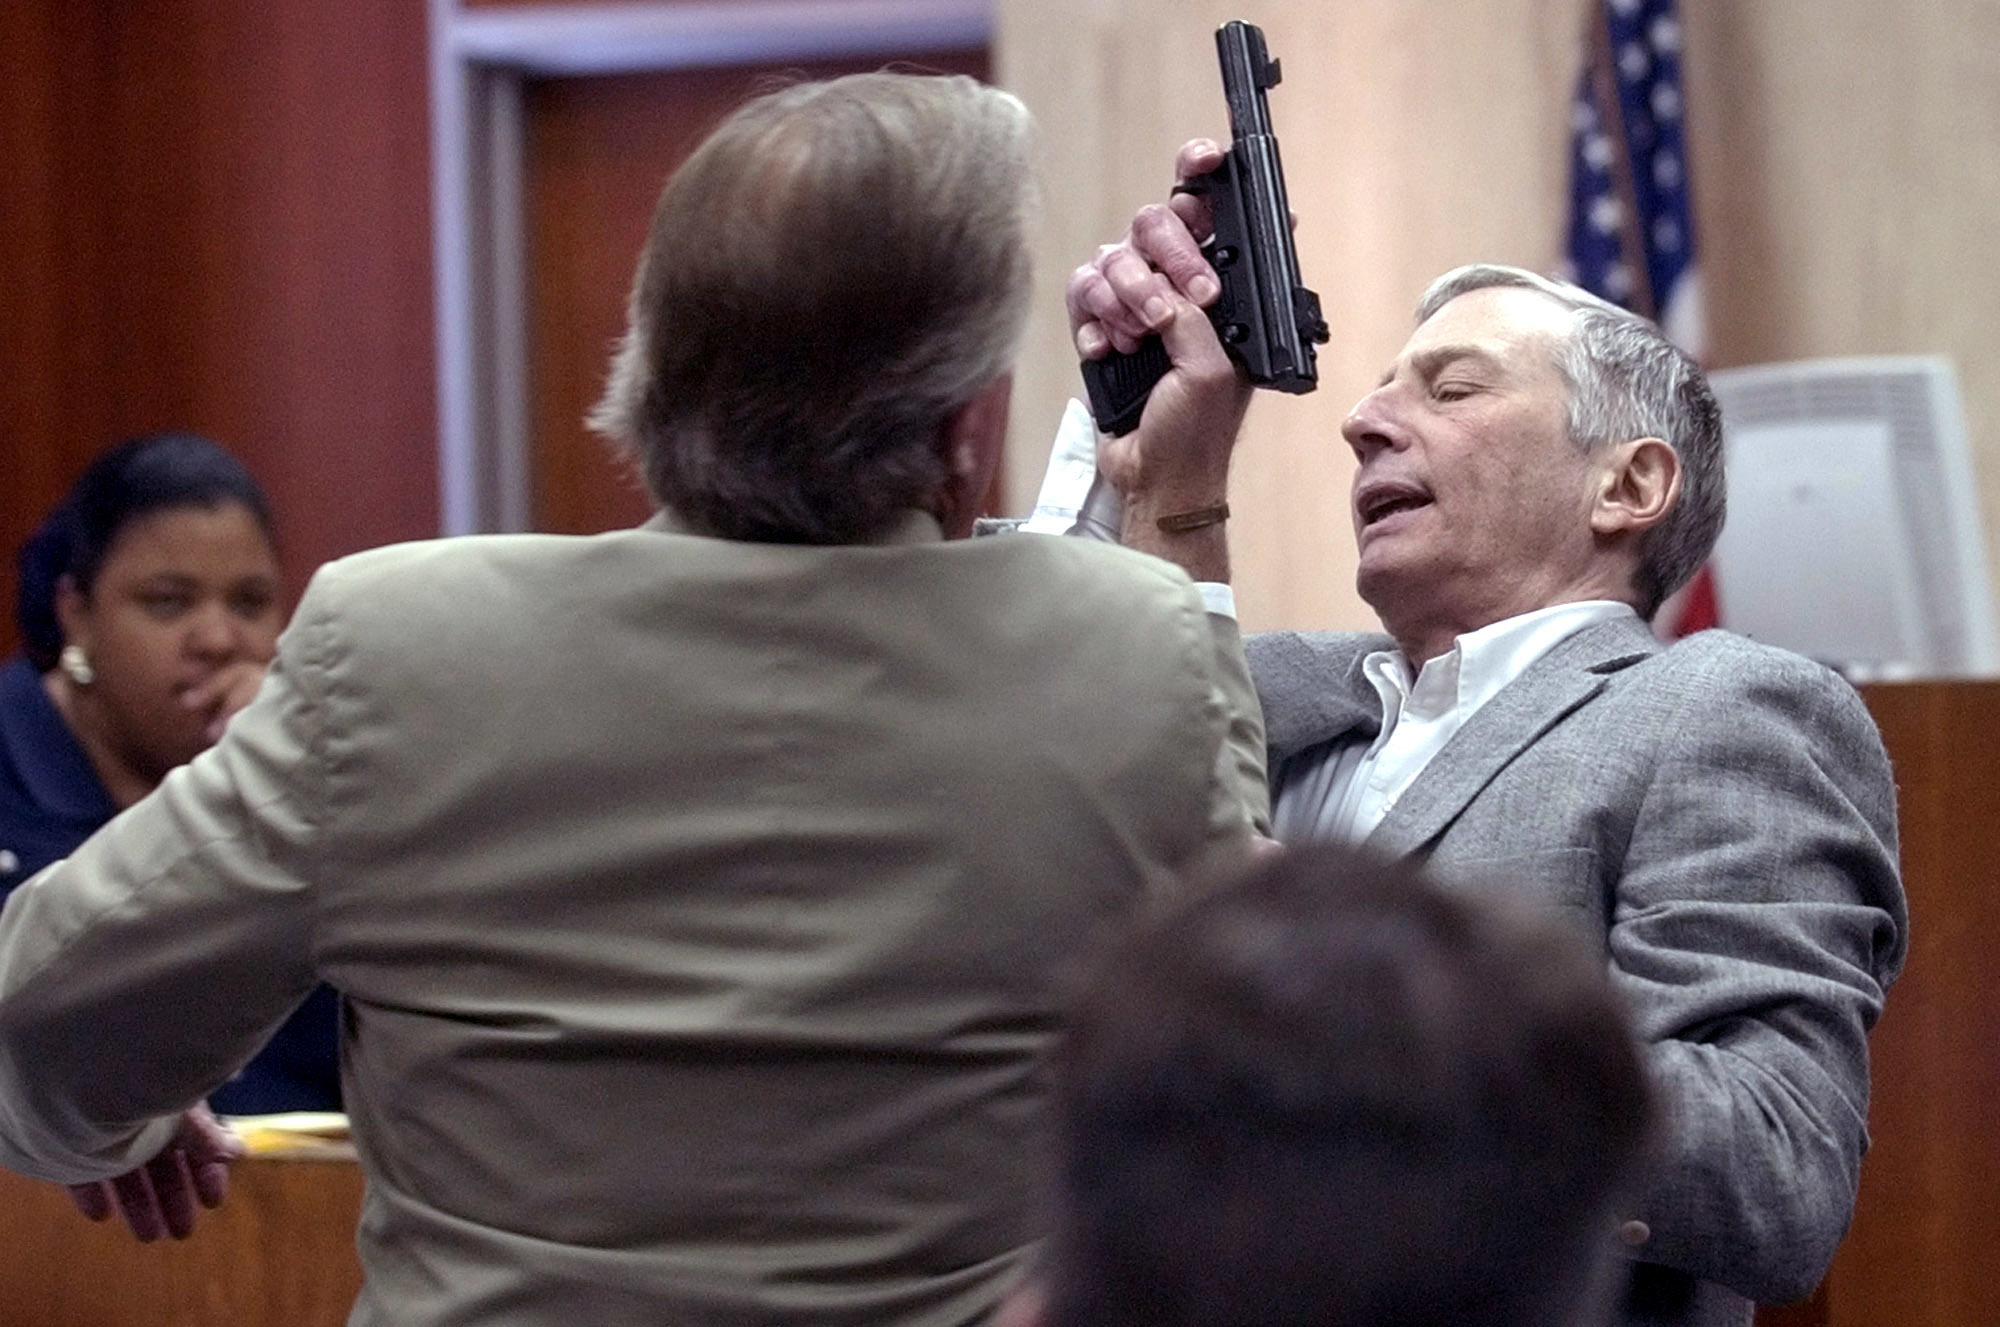 Multi-millionaire murder defendant Robert Durst and his attorney Dick DeGuerin demonstrate how Durst struggled with Morris Black during 2003 testimony in Galveston, Texas.